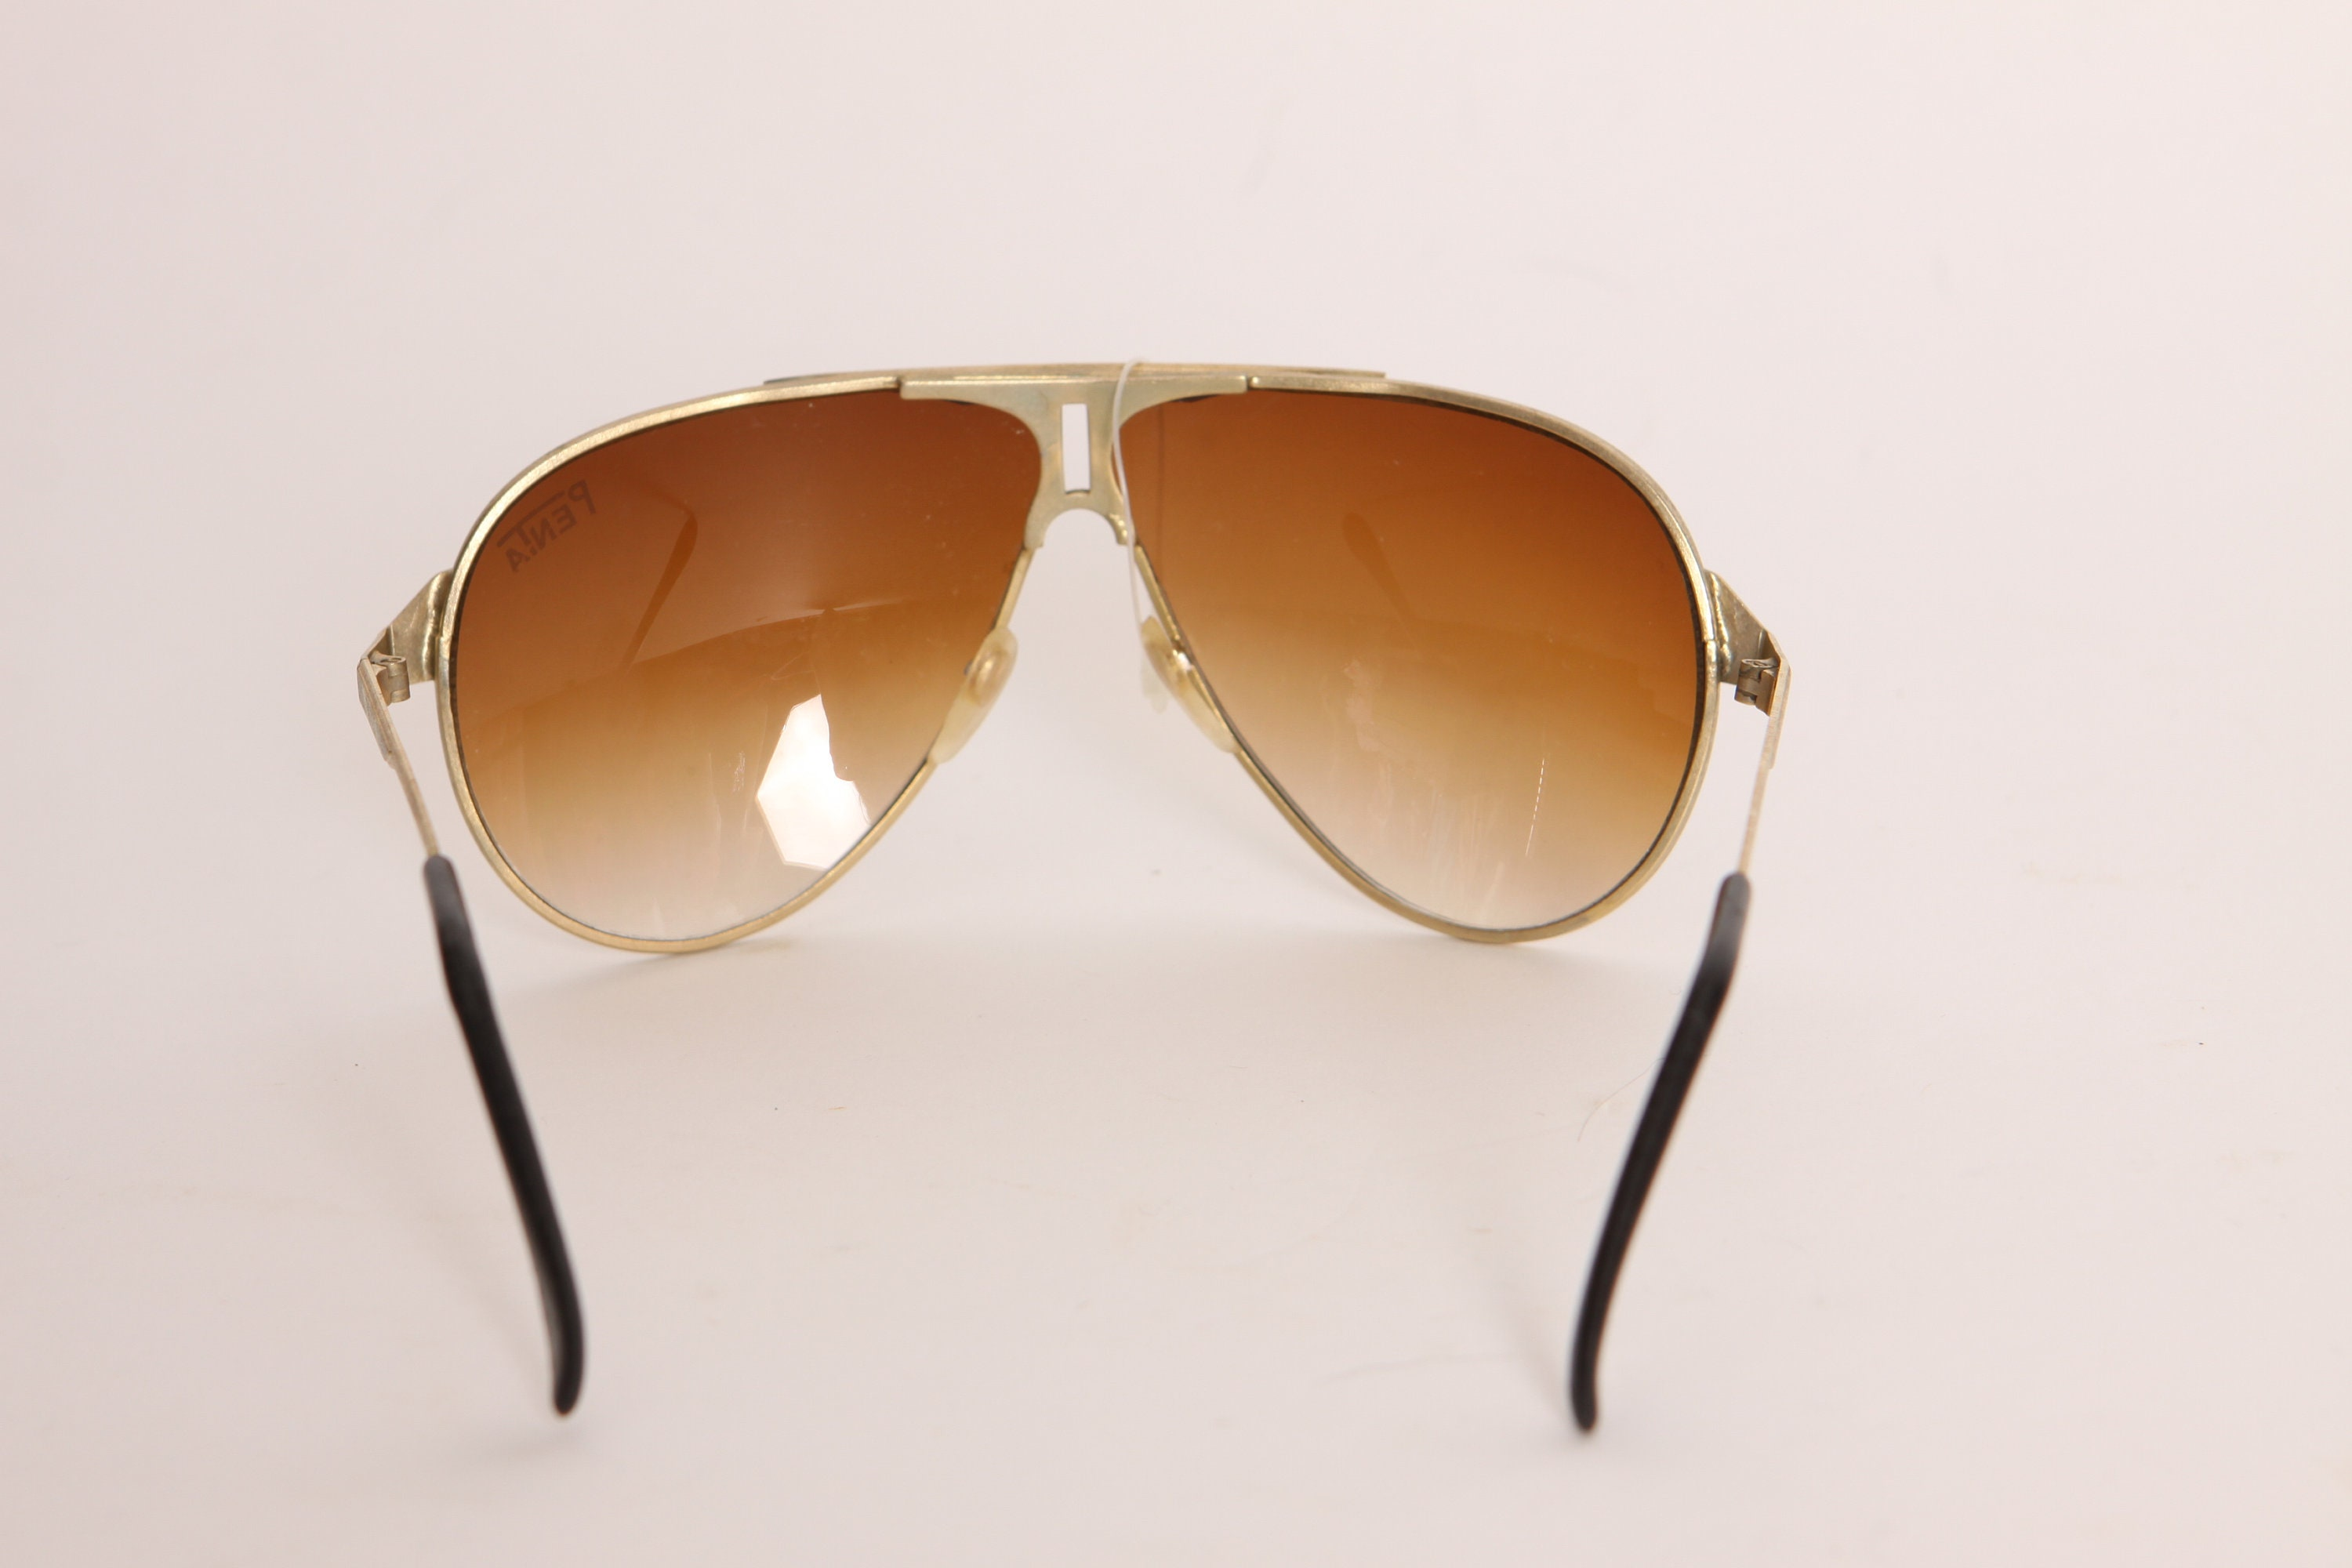 Deadstock 1970s Gold and Brown Aviator by Penta